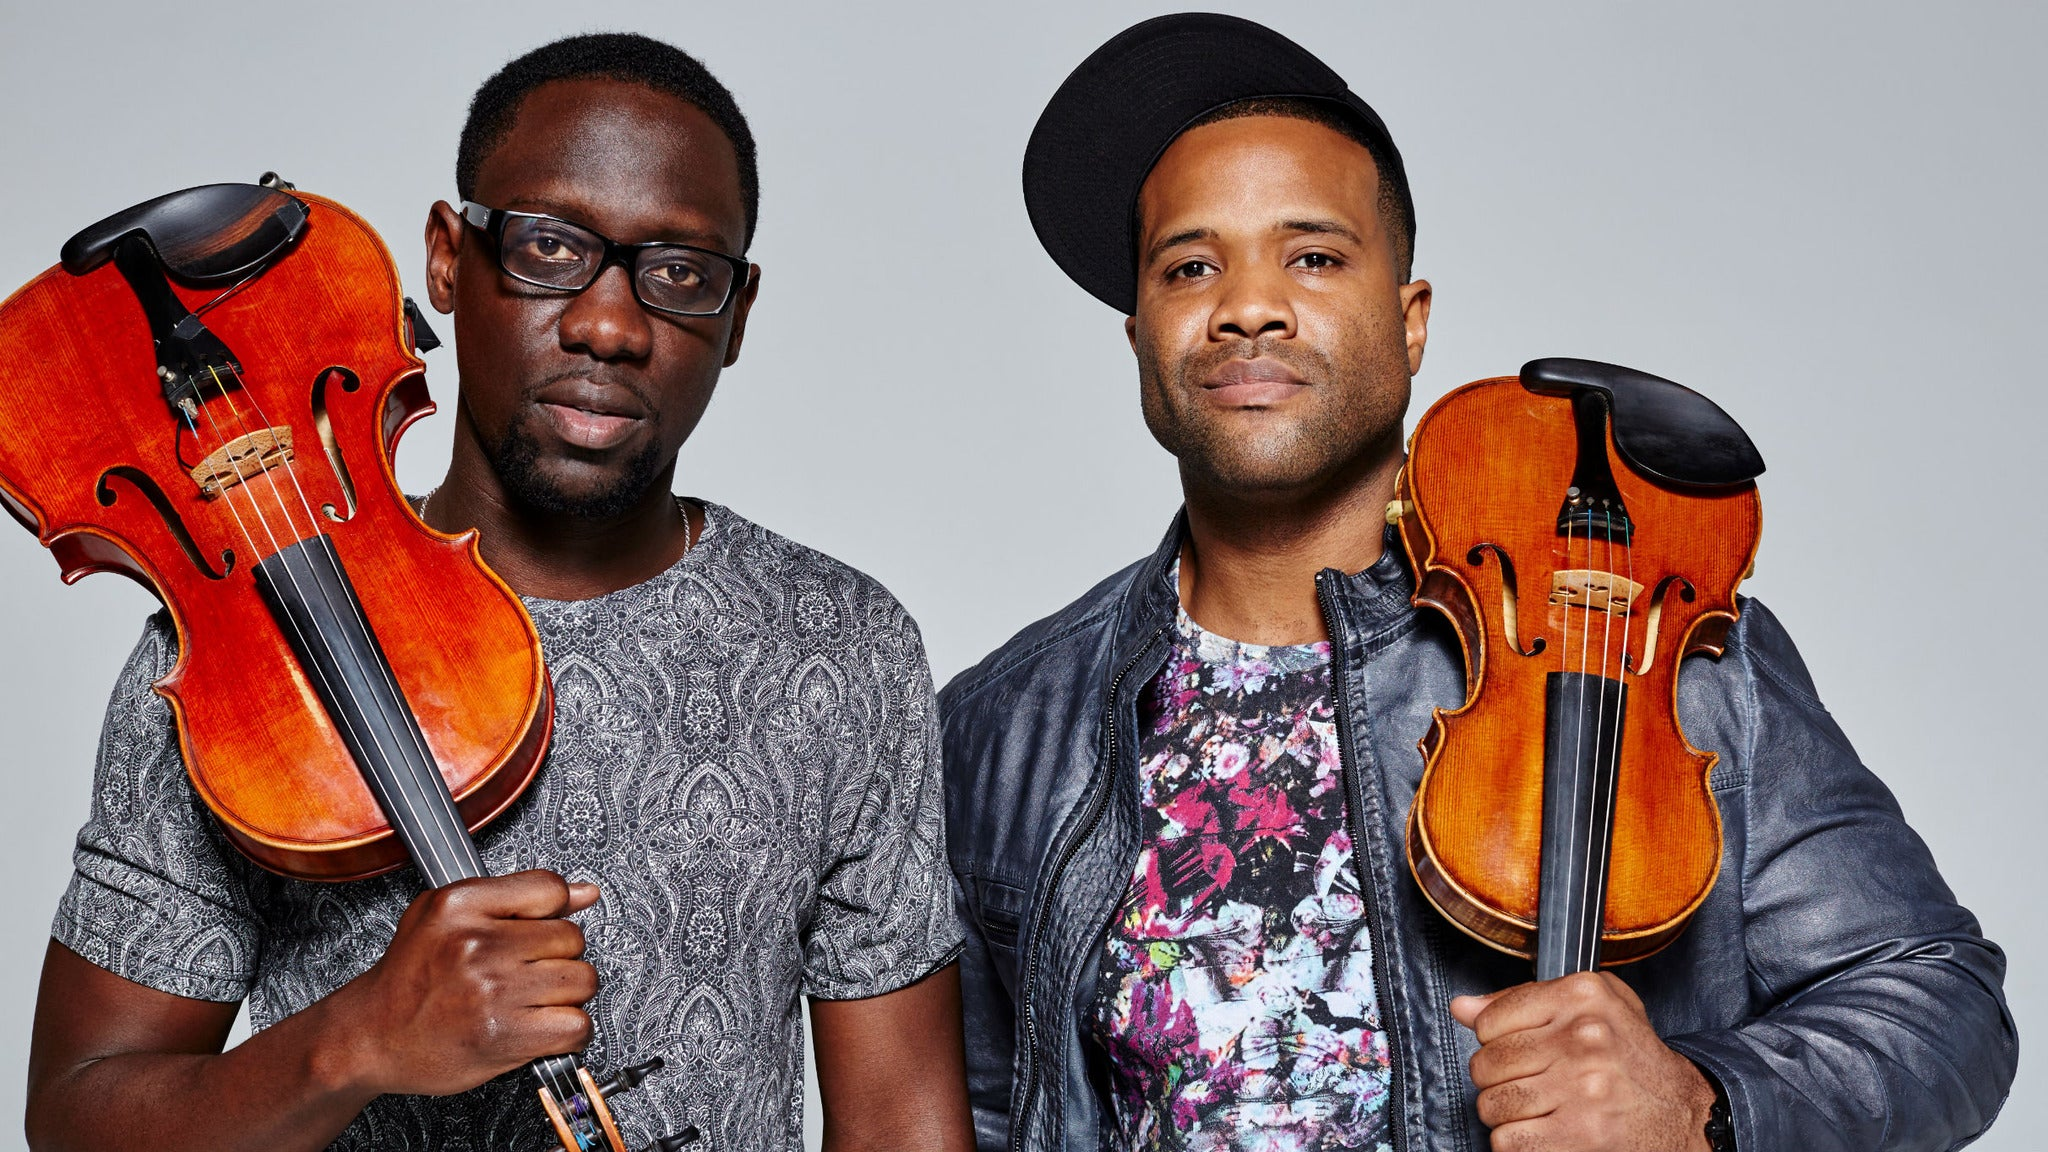 Black Violin at Community Theatre-NJ